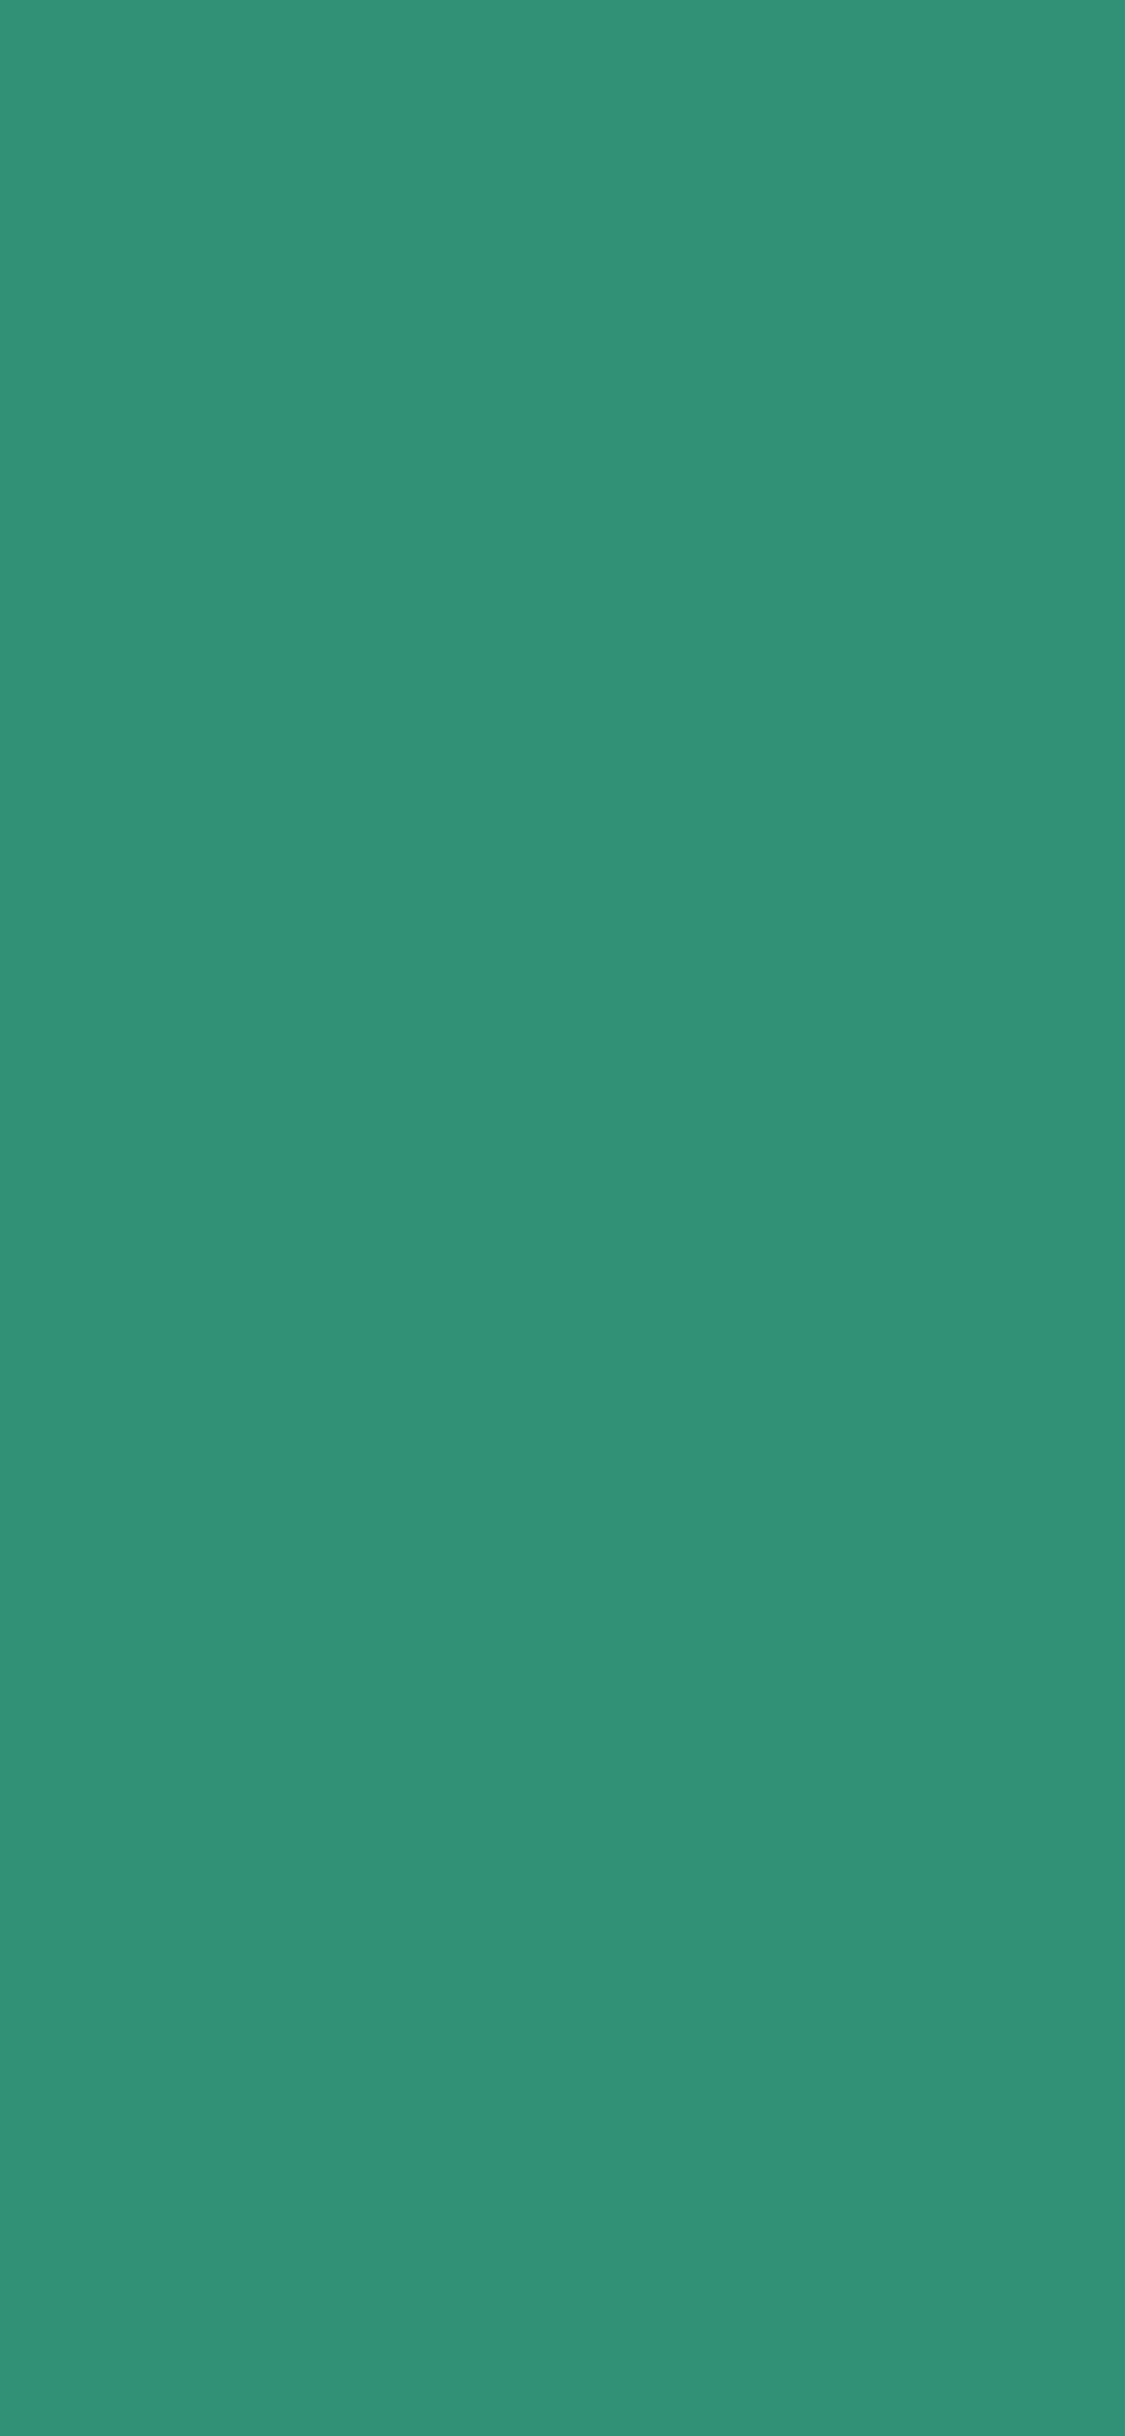 1125x2436 Illuminating Emerald Solid Color Background